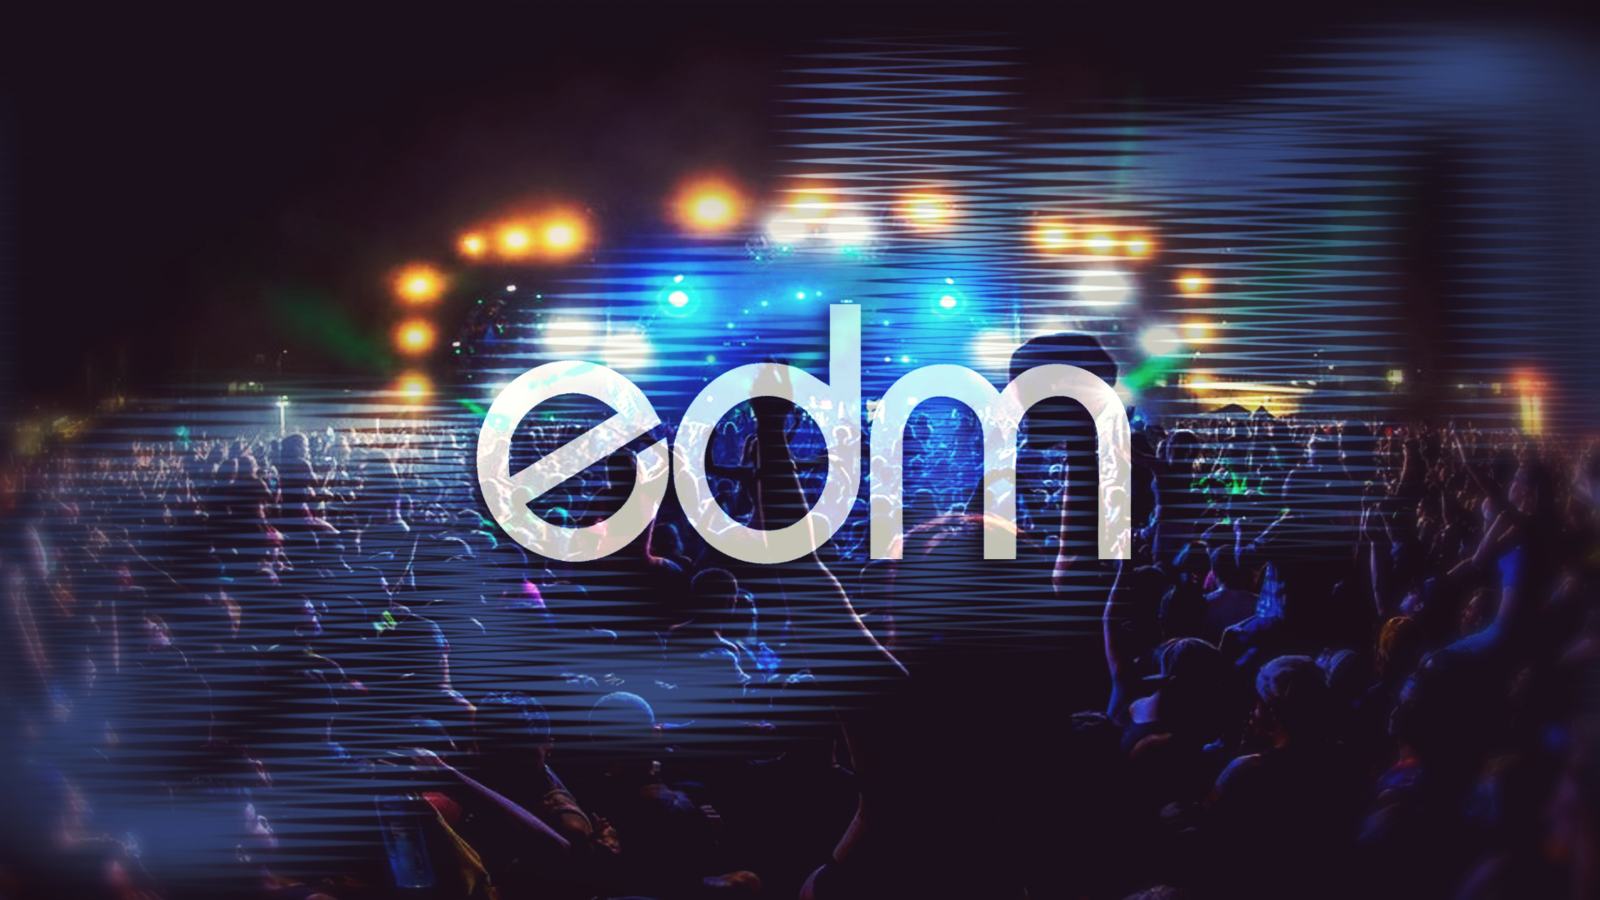 edm concert background - photo #44